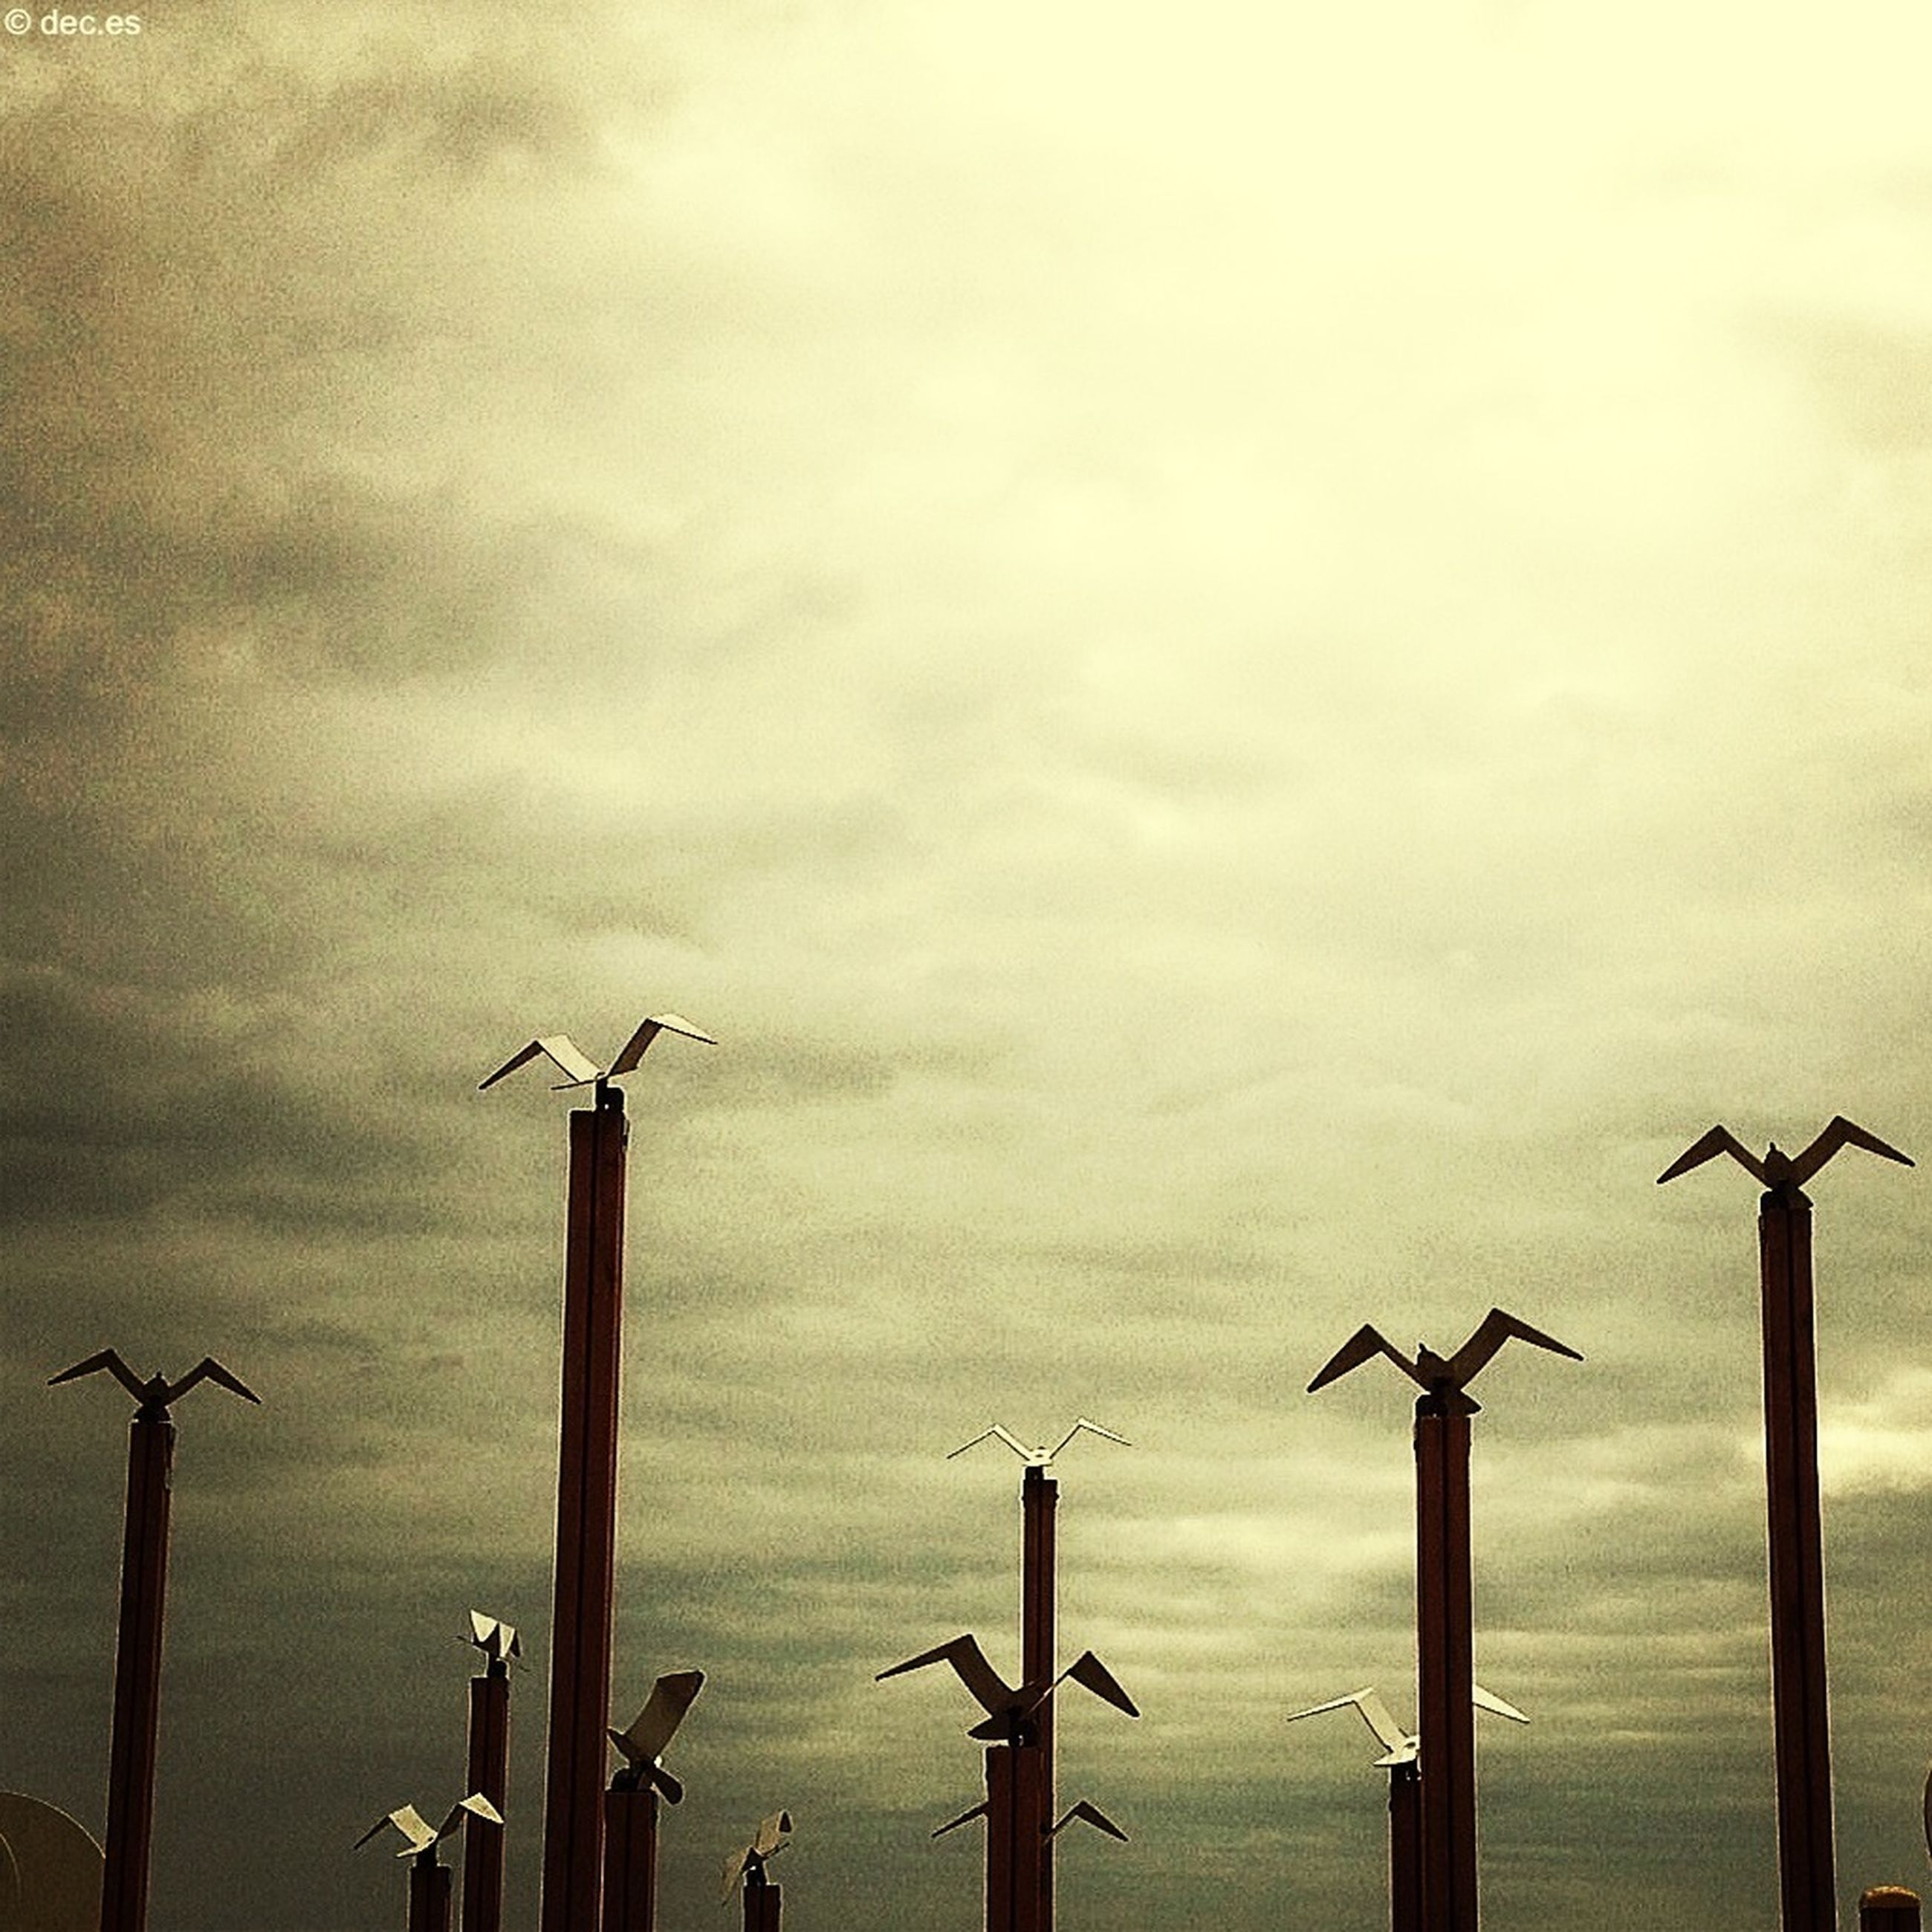 alternative energy, wind turbine, renewable energy, environmental conservation, wind power, bird, windmill, sky, fuel and power generation, wooden post, cloud - sky, low angle view, nature, no people, outdoors, cloudy, animals in the wild, day, wildlife, animal themes